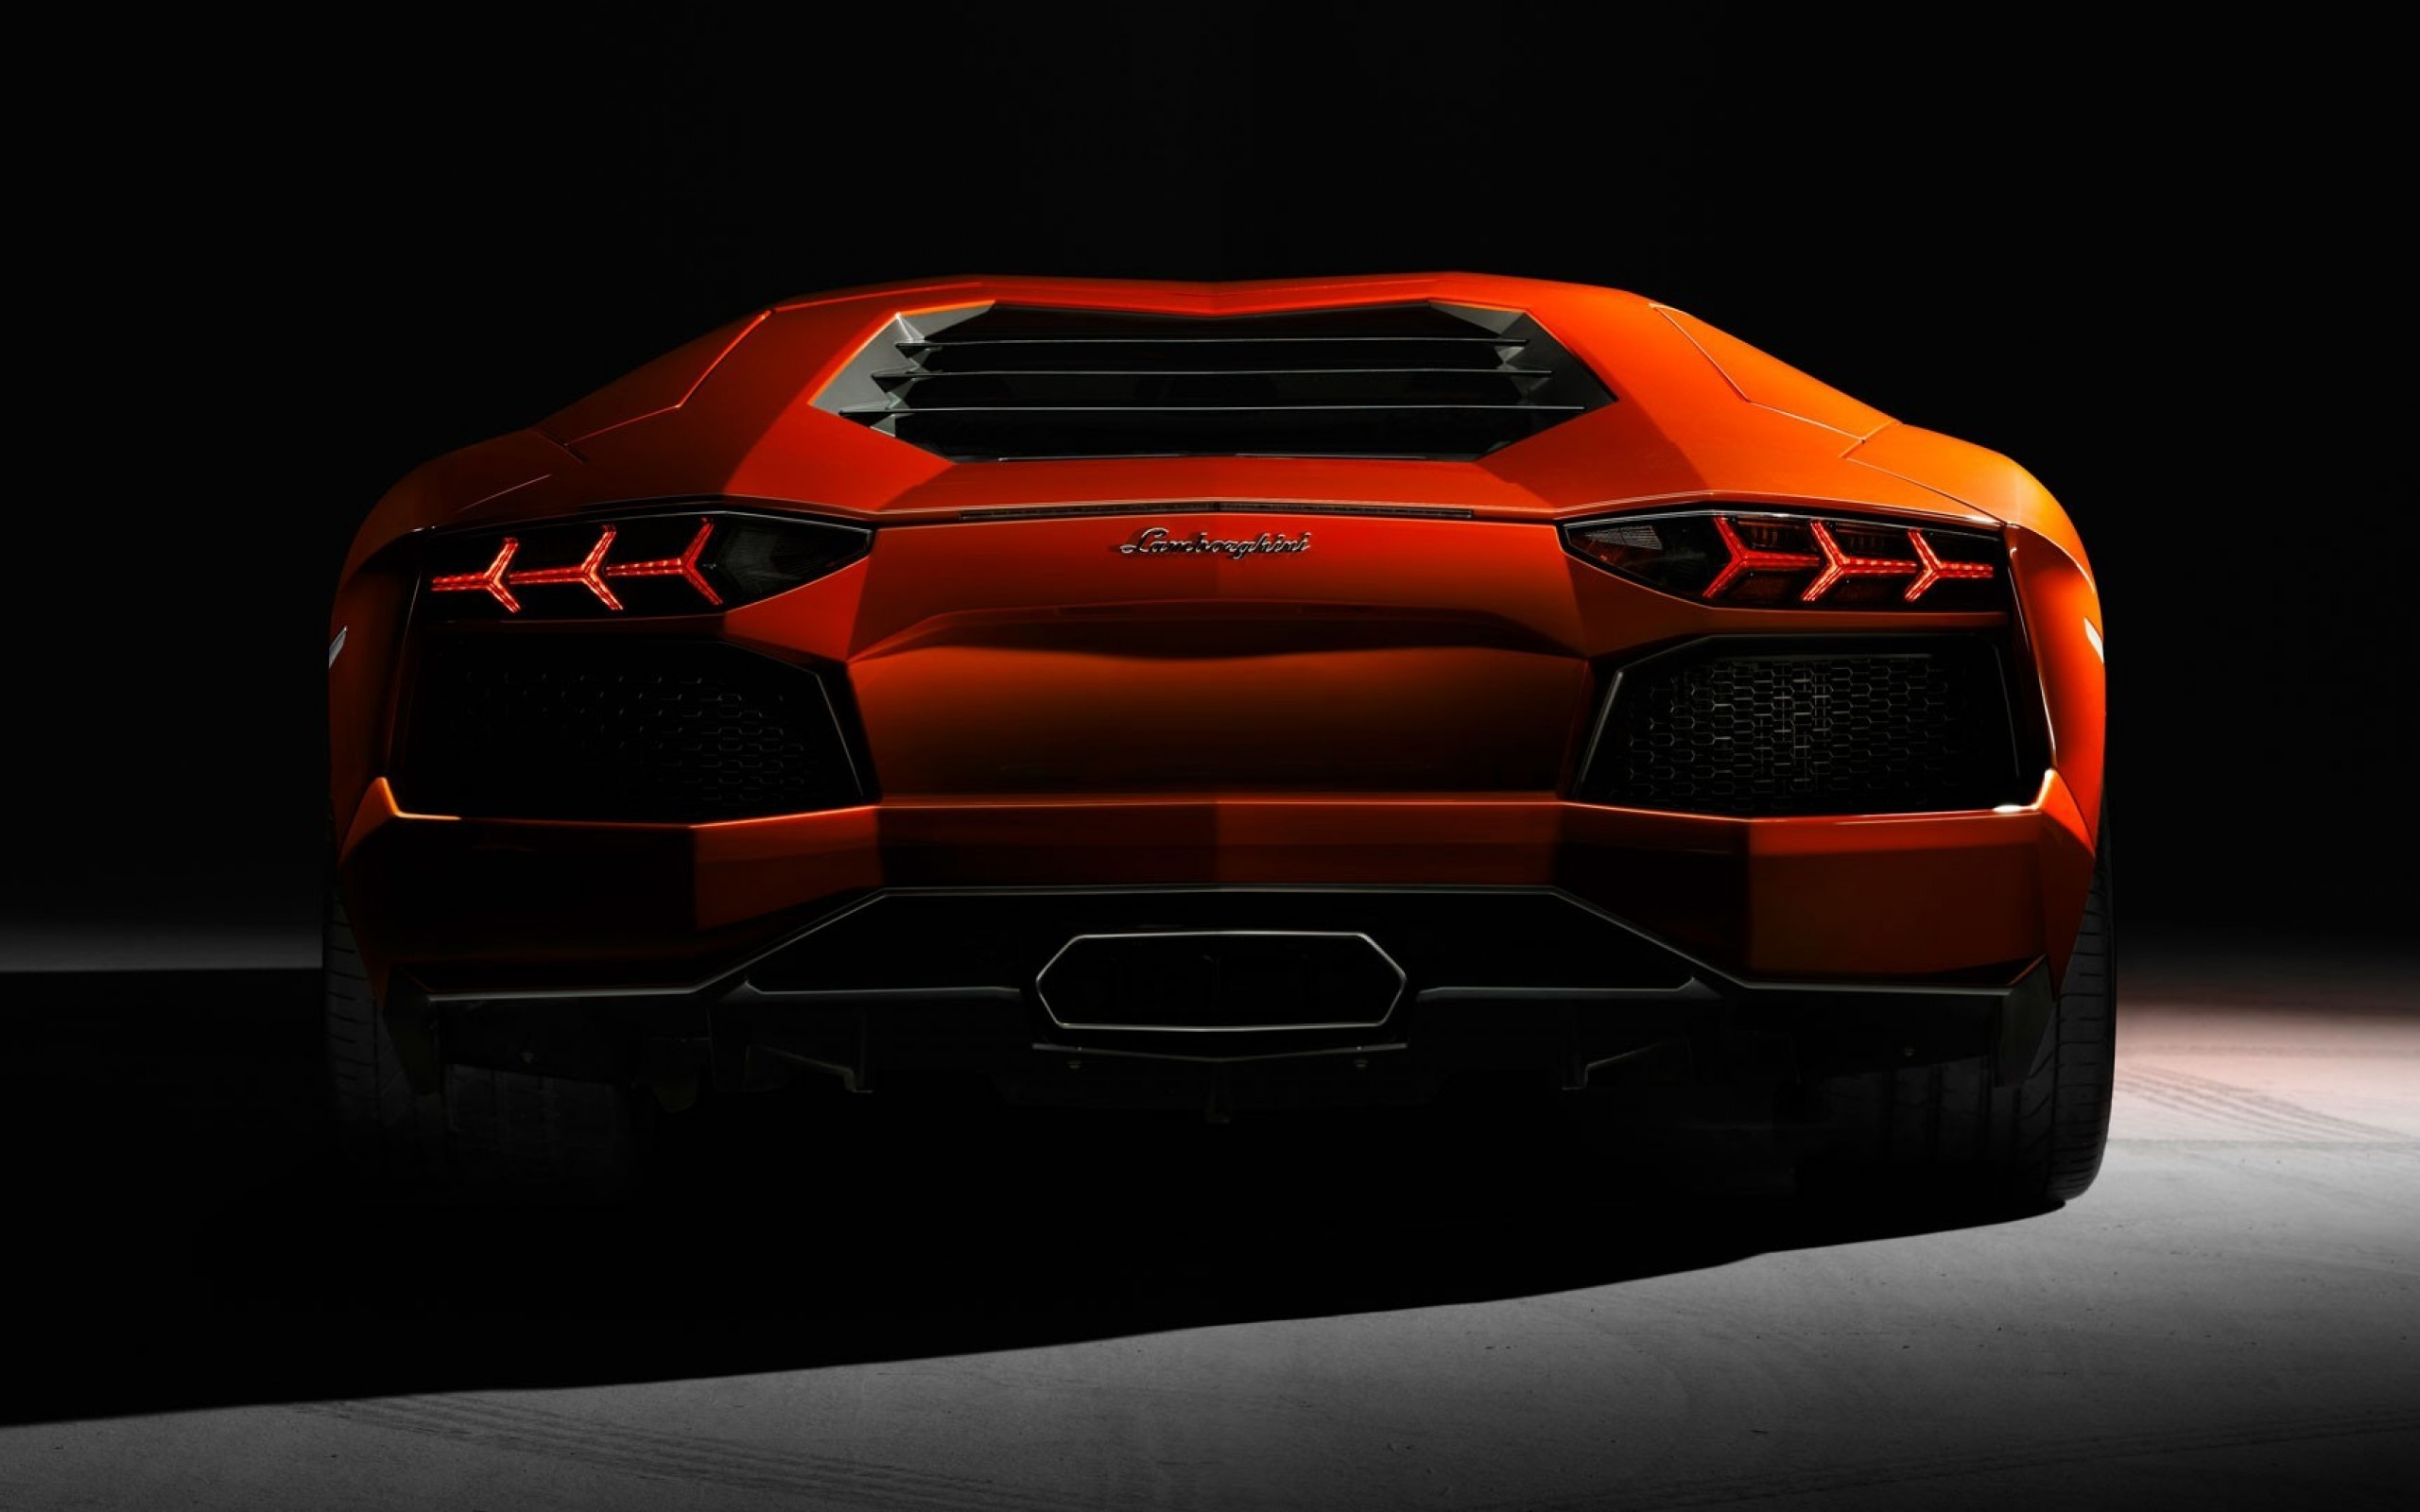 Lamborghini Aventador Wallpapers, Pictures, Images